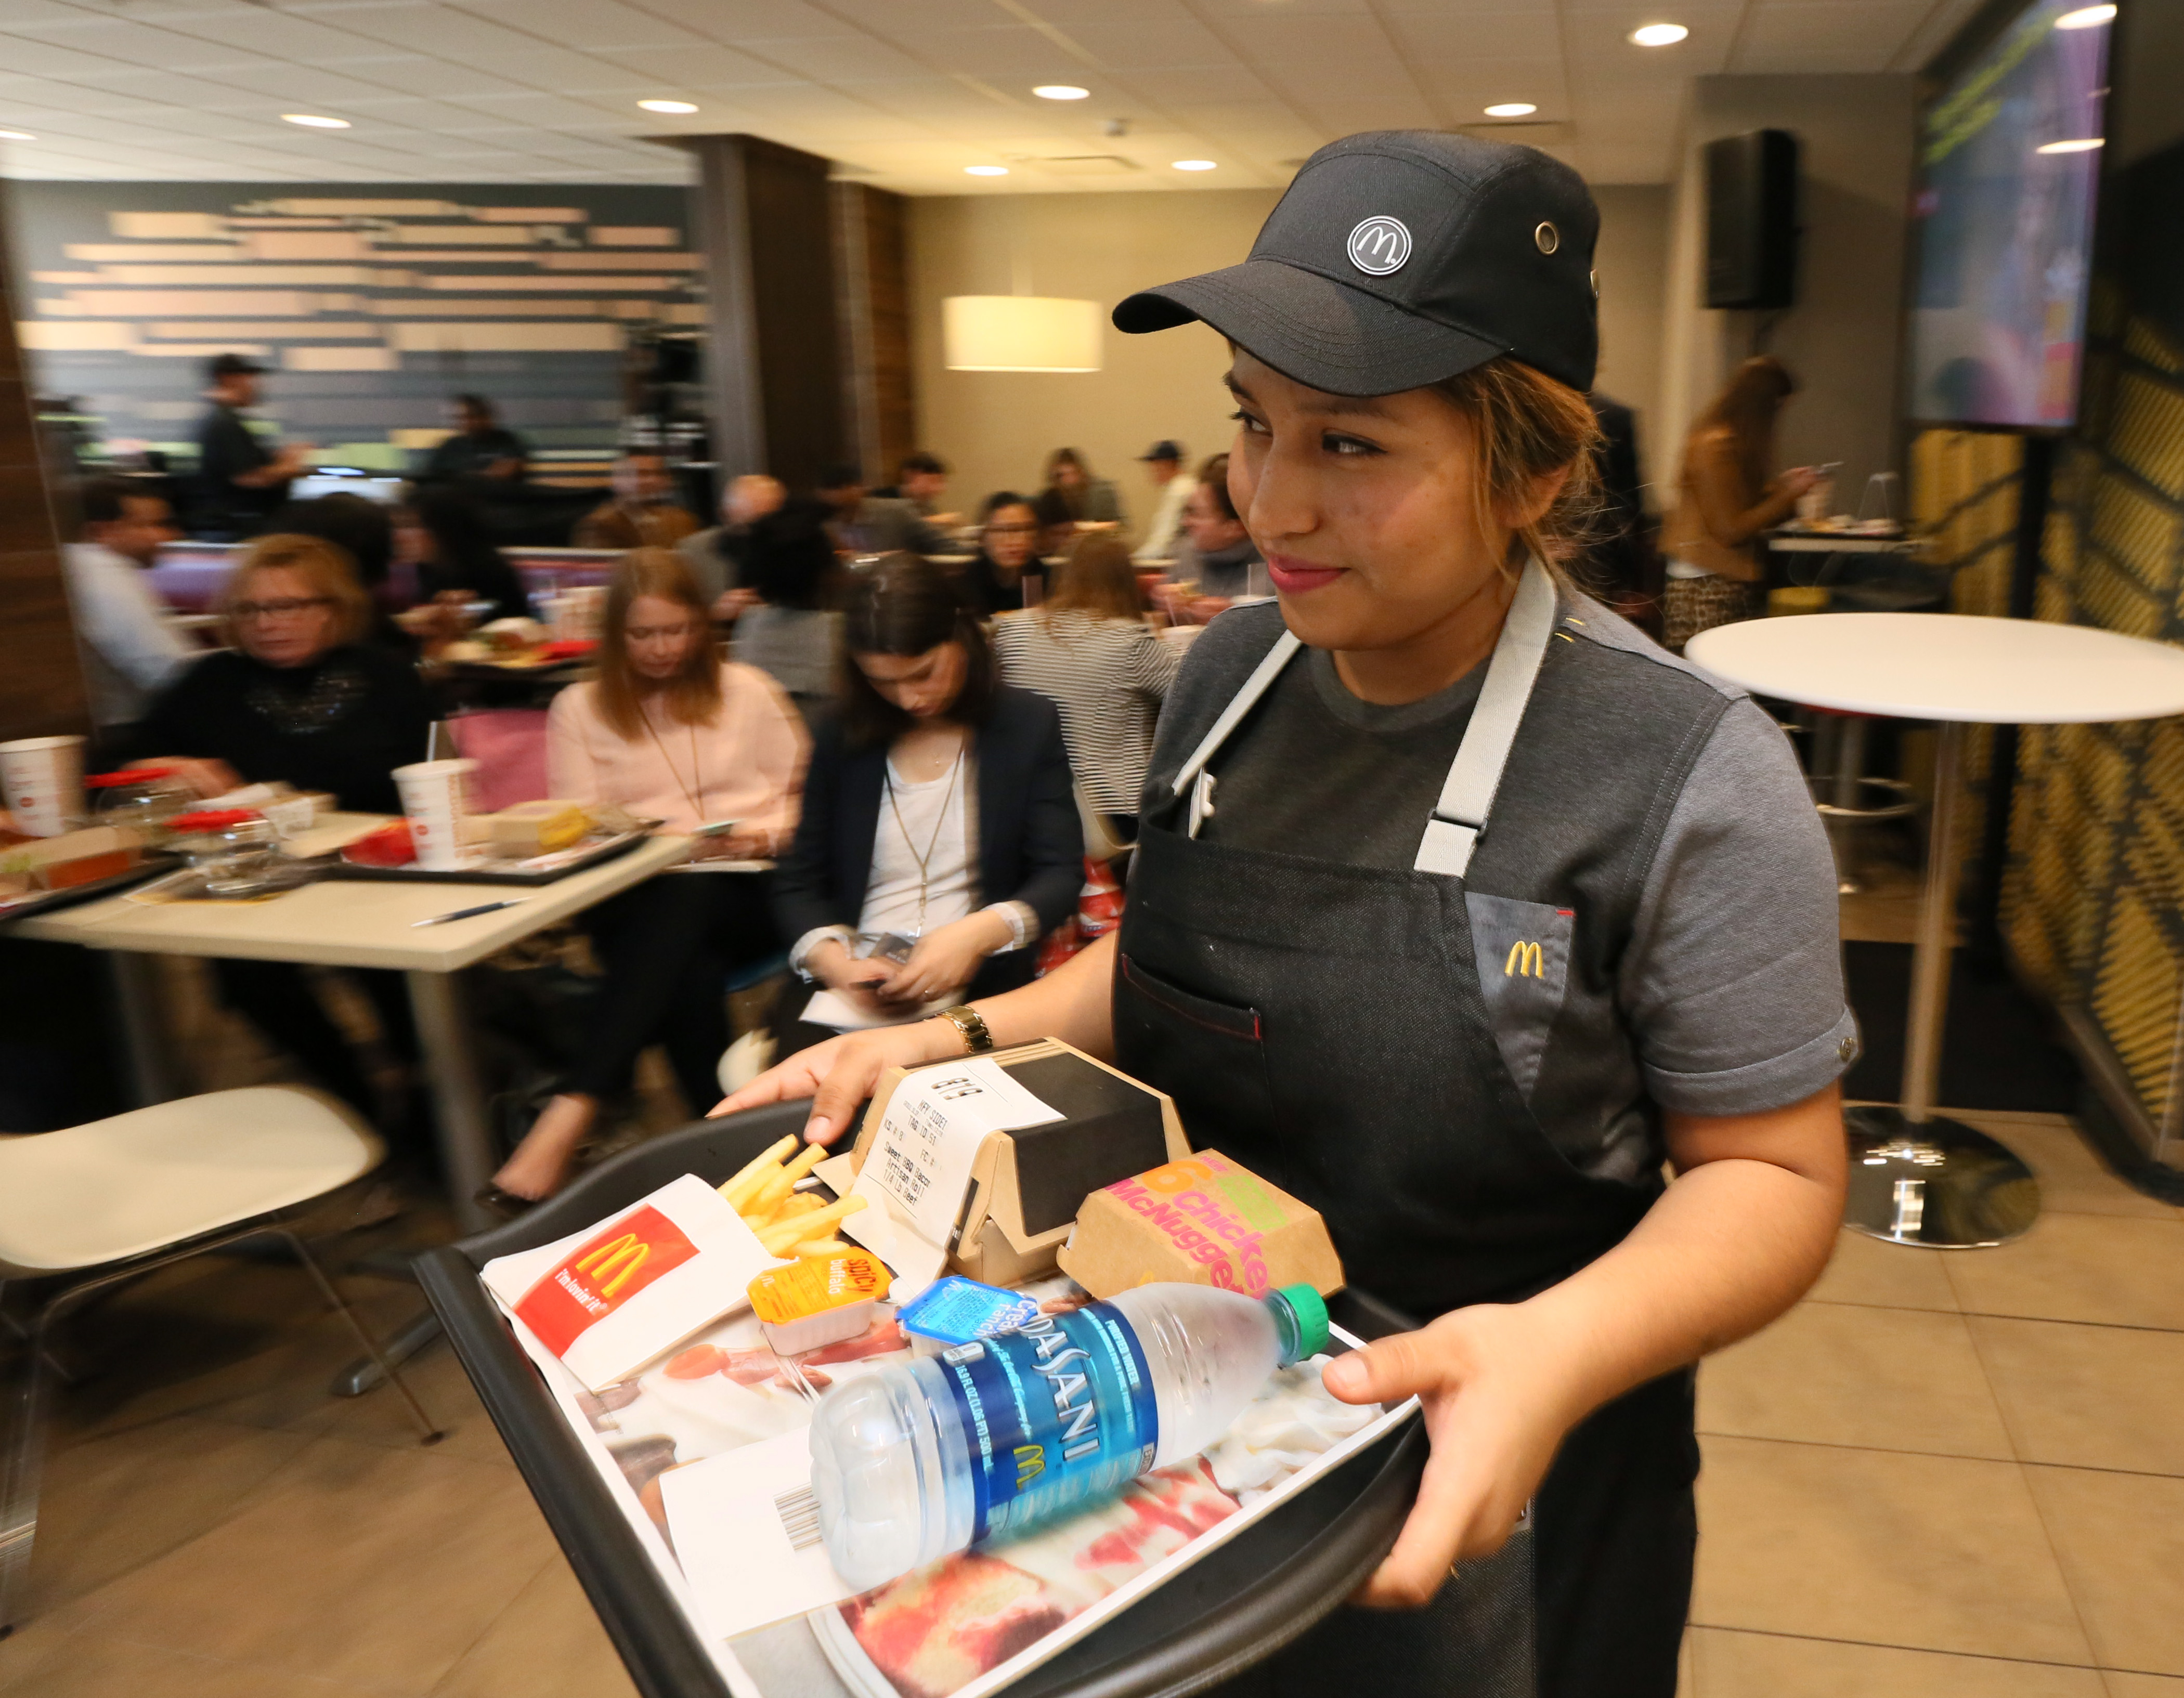 Minimum Wage To Go Up In 21 States